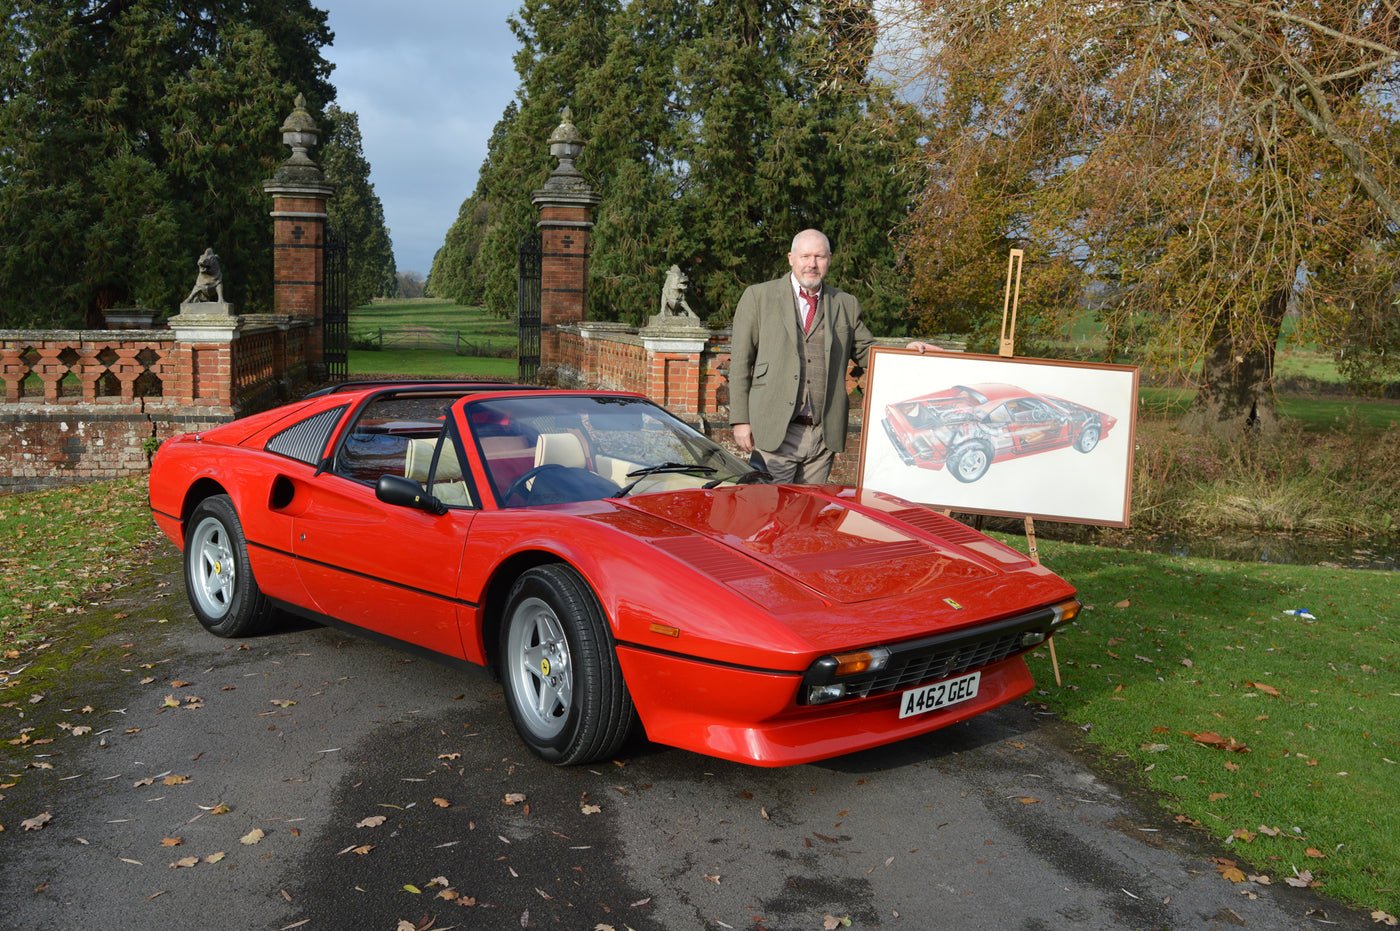 Meet John: From Painting A Ferrari 308 To Owning One